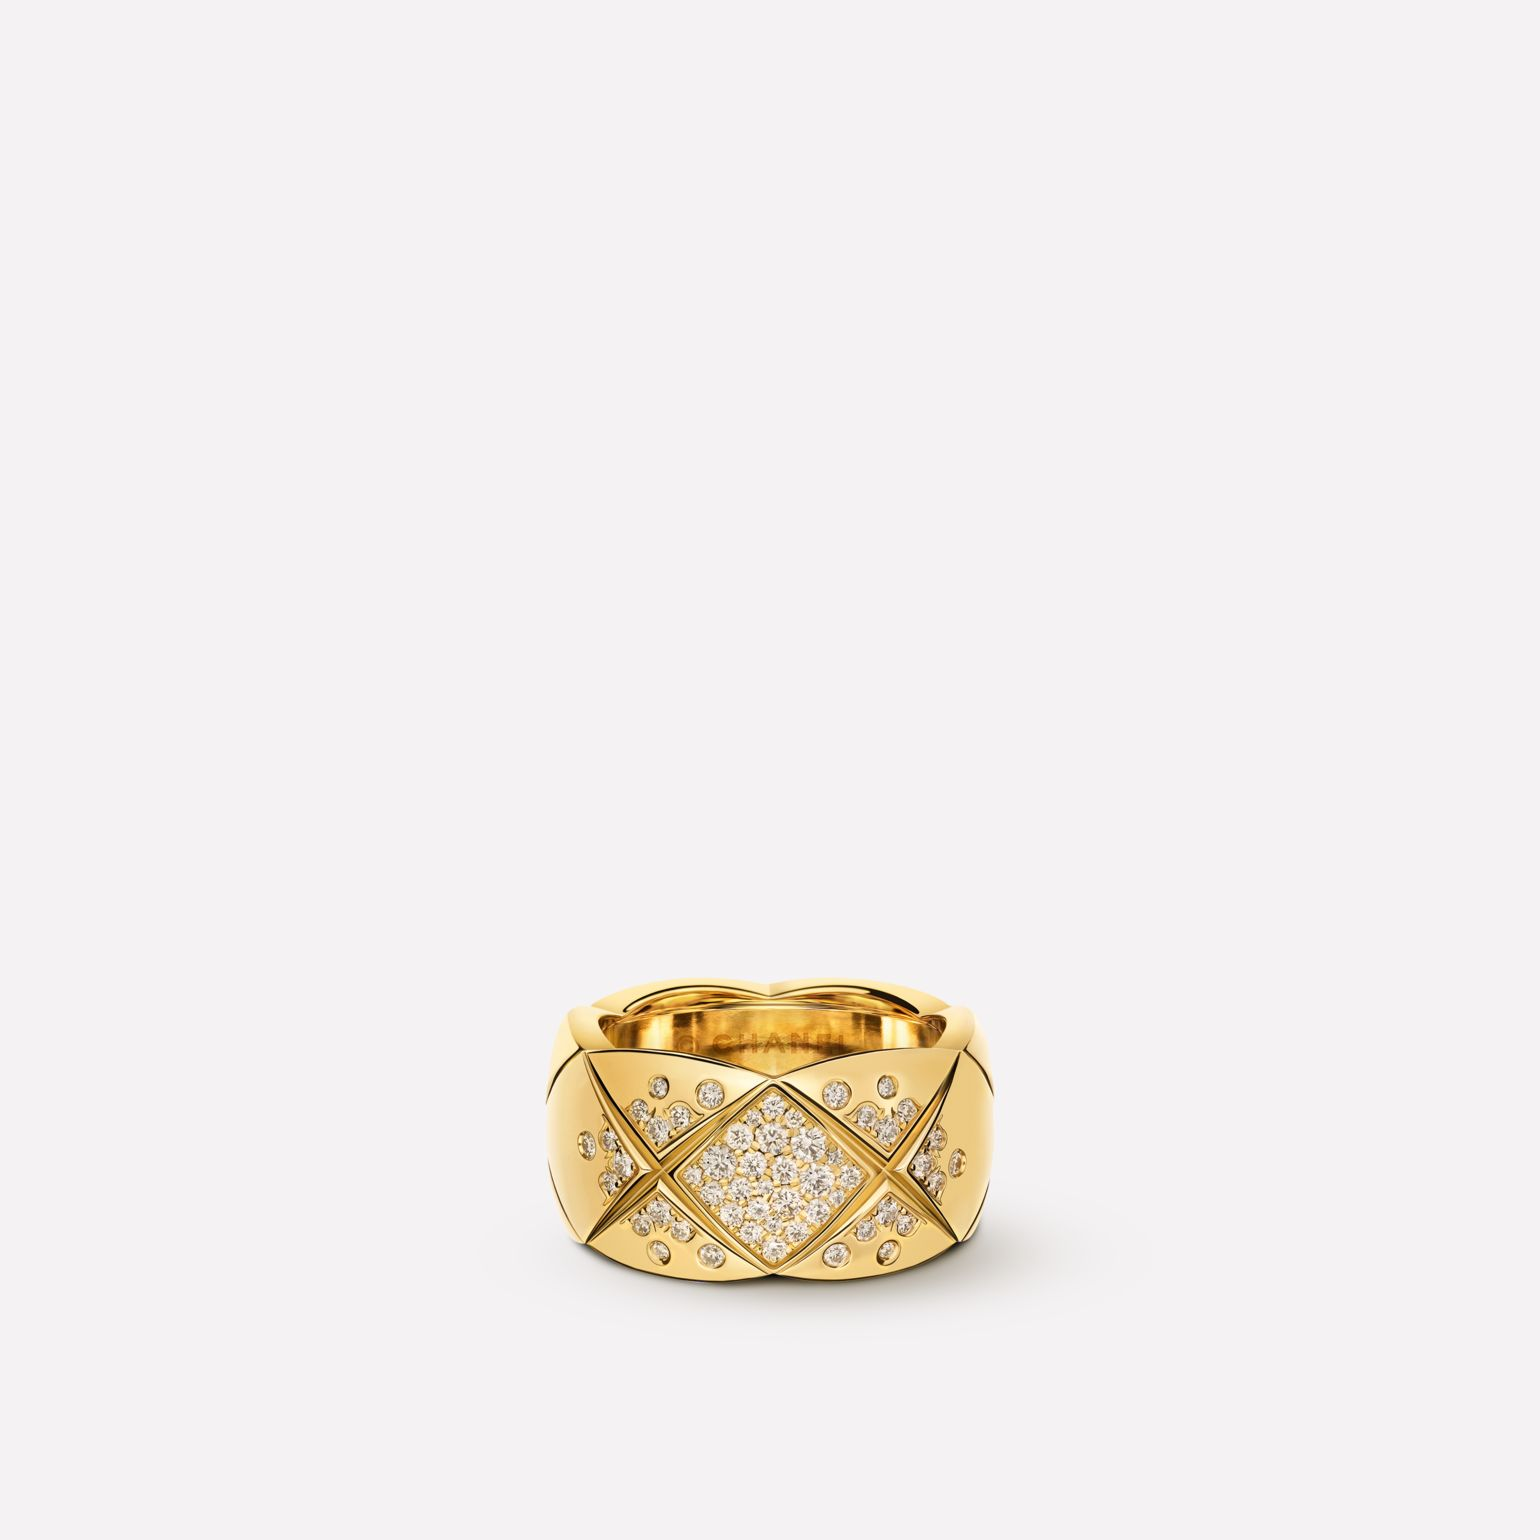 Coco Crush Ring Coco Crush quilted ring in 18K yellow gold and diamonds. Medium version.